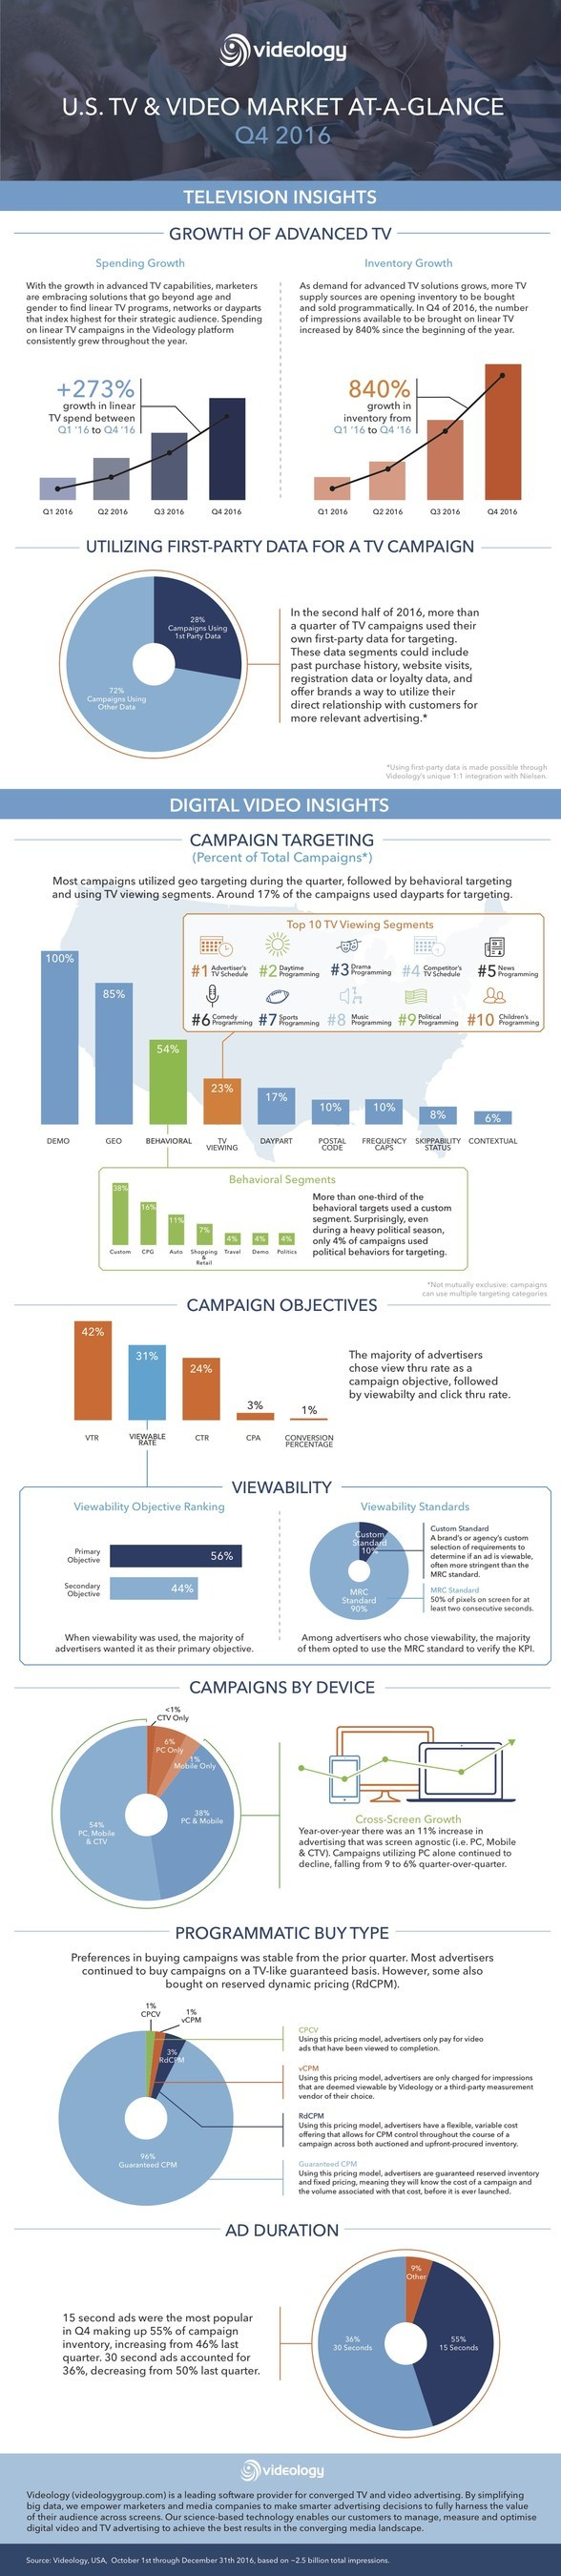 Videology's Q4 2016 'TV & Video At-A-Glance' report